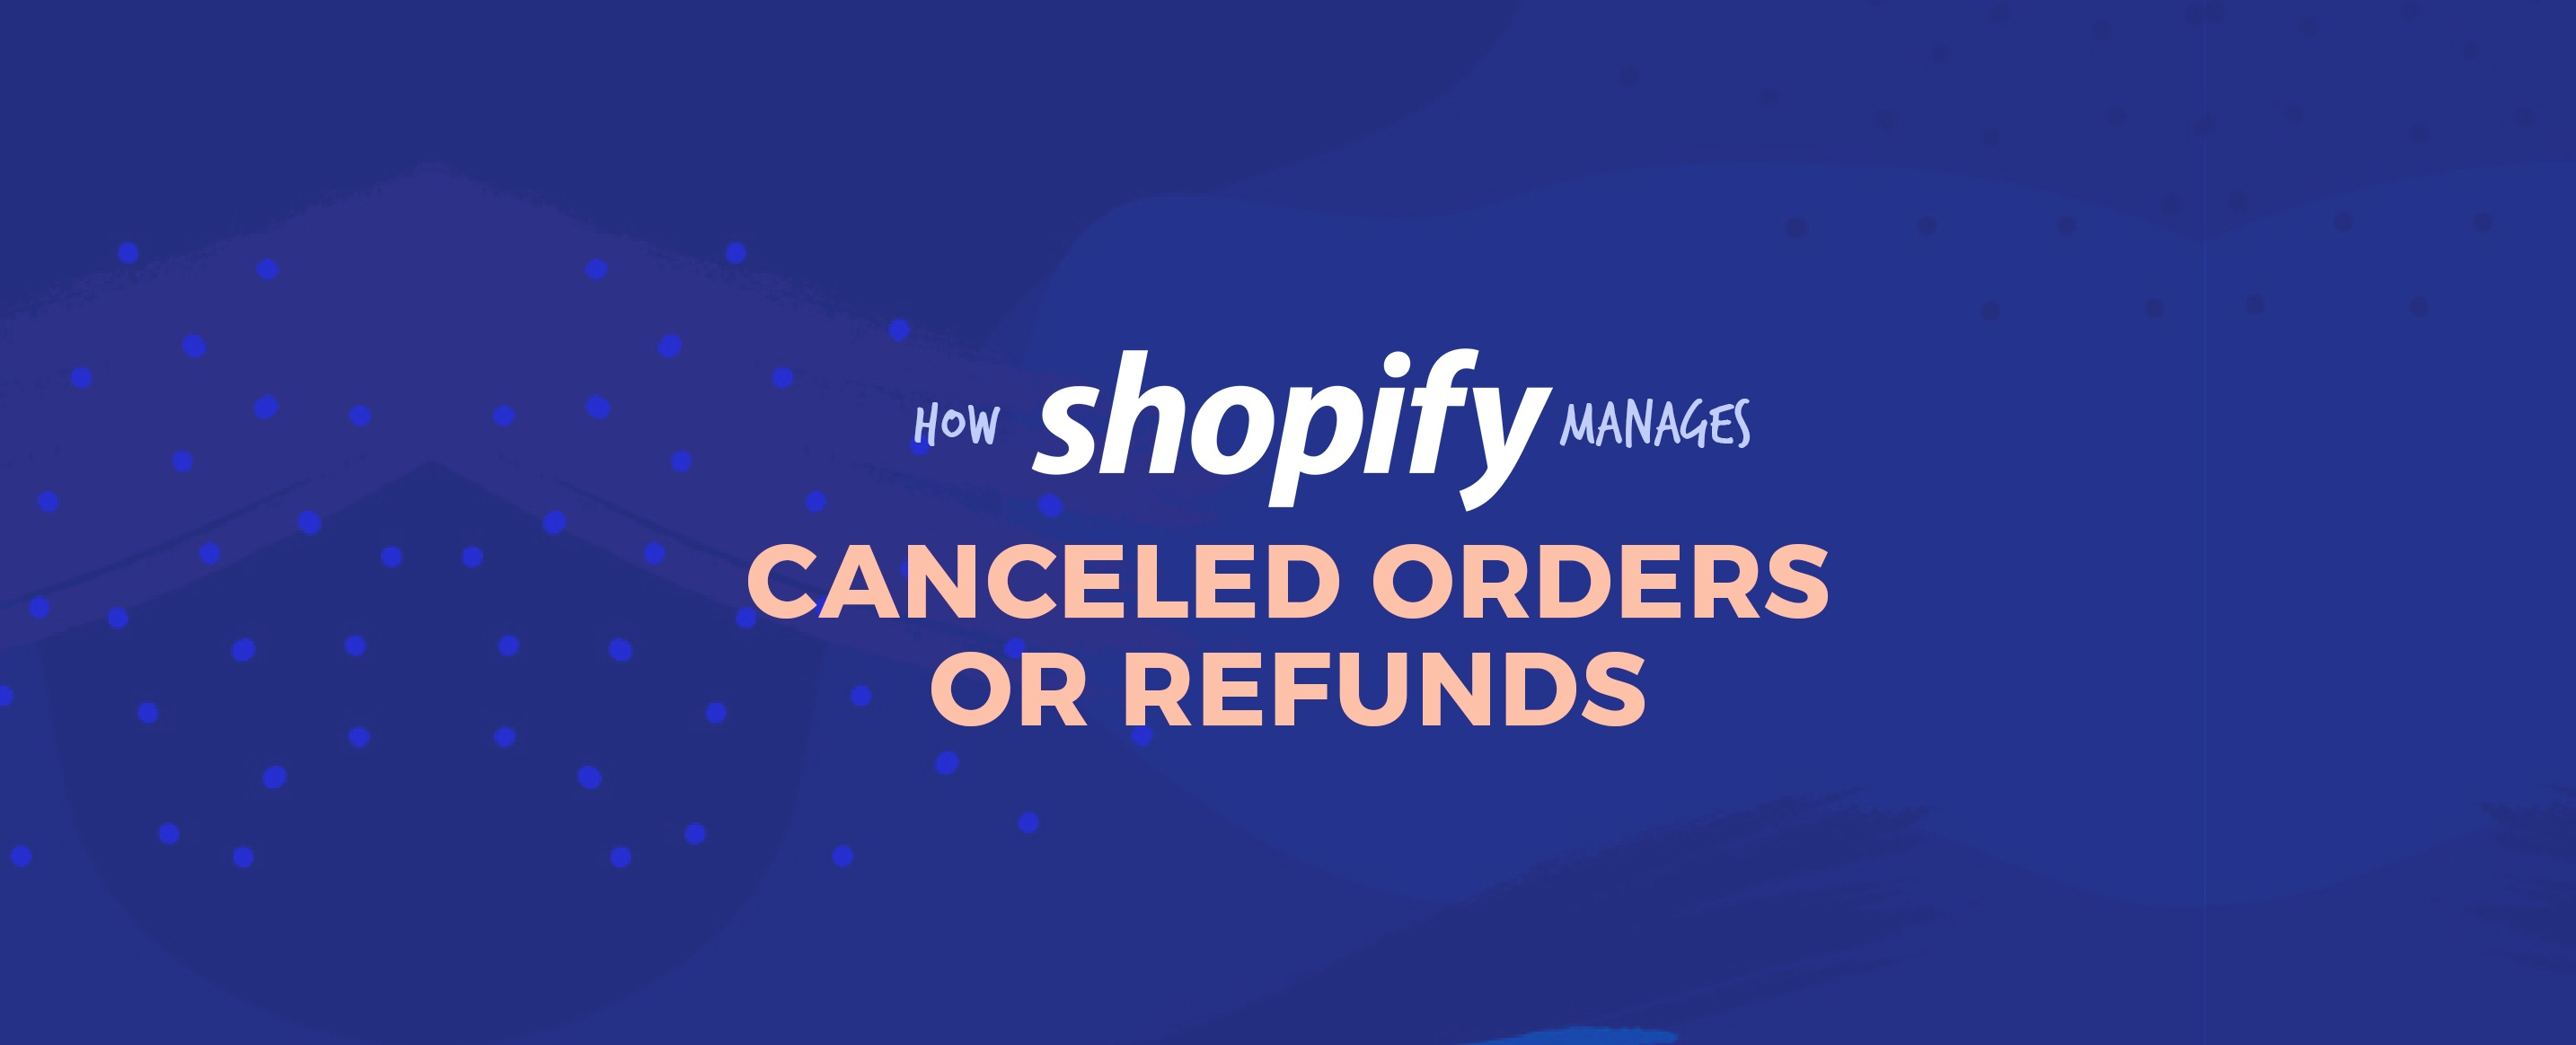 How-Shopify-Manages-Canceled-Orders-or-Refunds